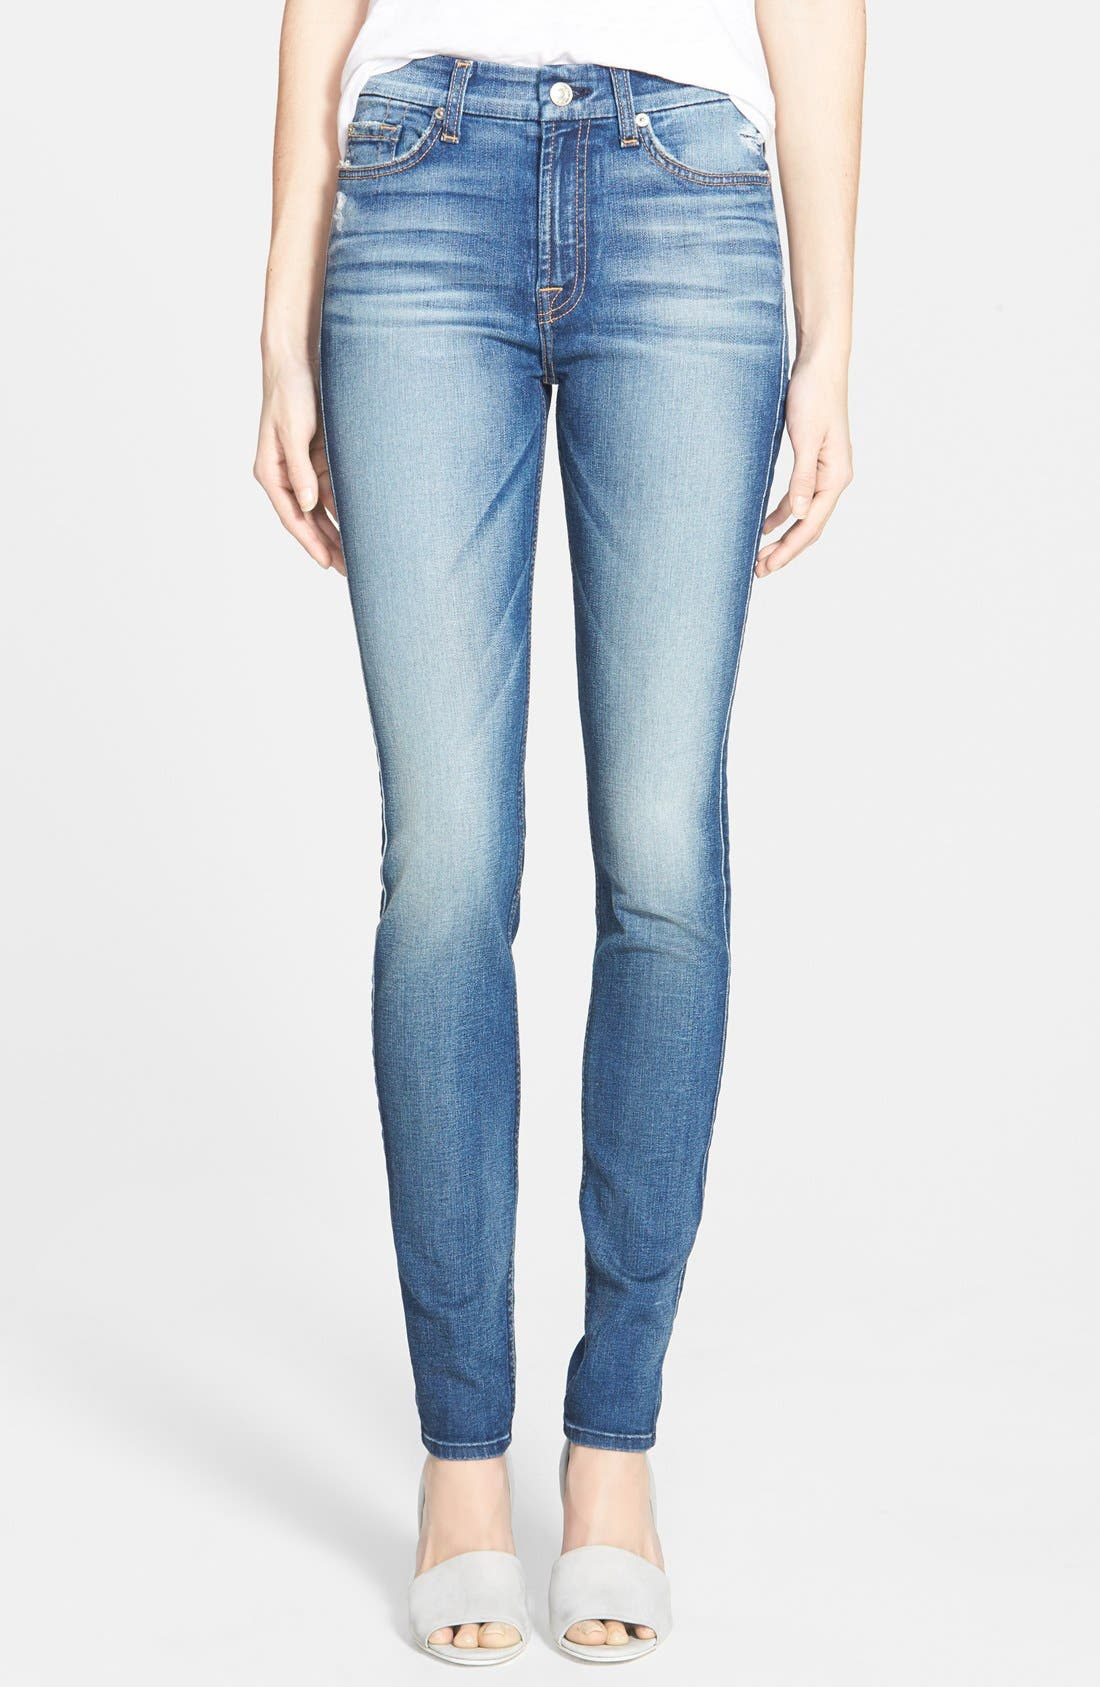 Alternate Image 1 Selected - 7 For All Mankind® Mid Rise Skinny Jeans (Distressed Authentic Light)